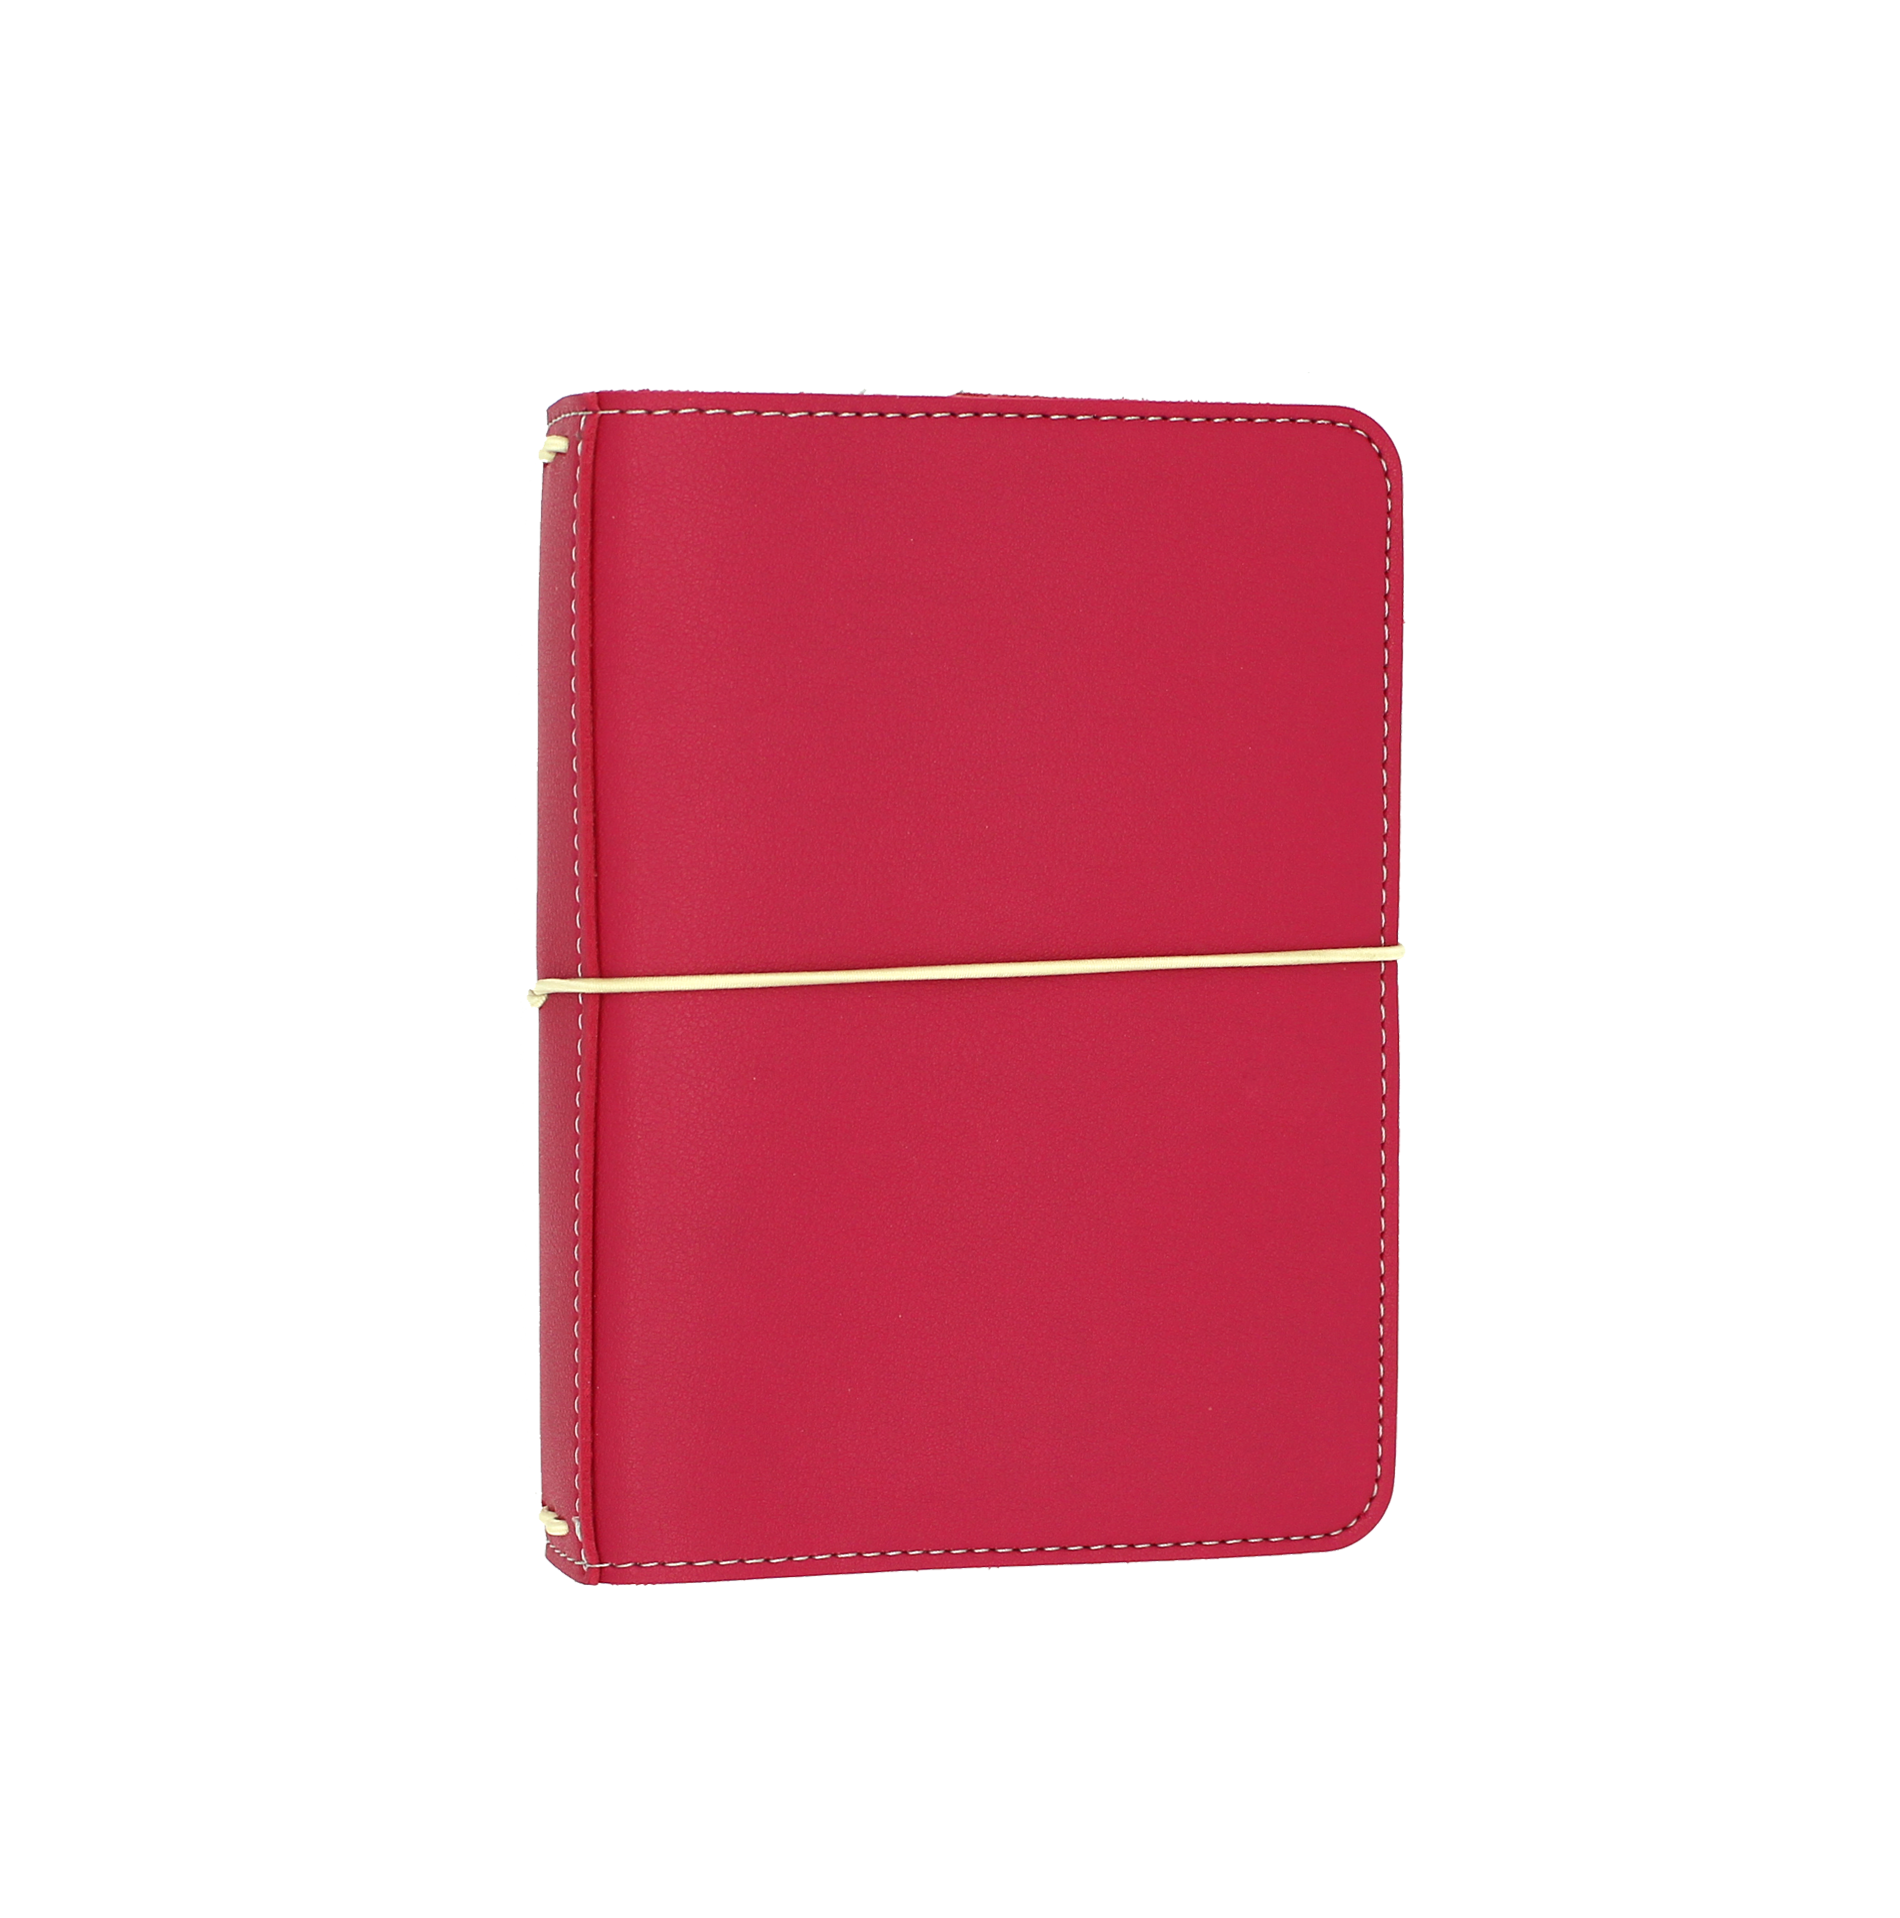 Perfect Fit B6 Travelers Notebook - Poppy